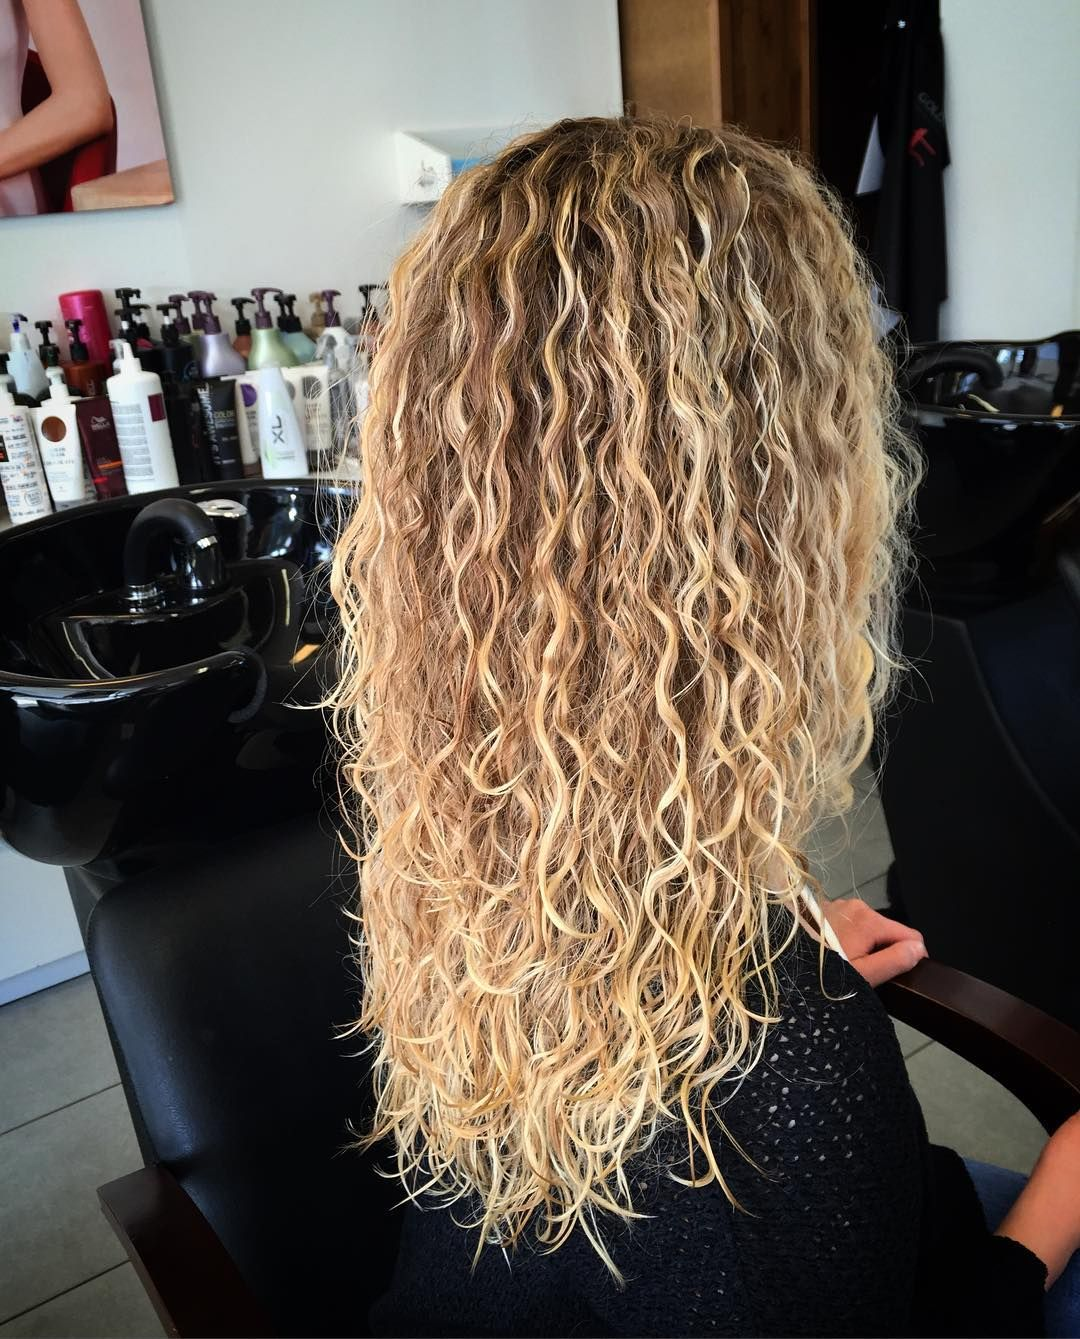 Straight perm for curly hair - 50 Trendy Perm Styles From Spiral And Curly To Wave And Straight